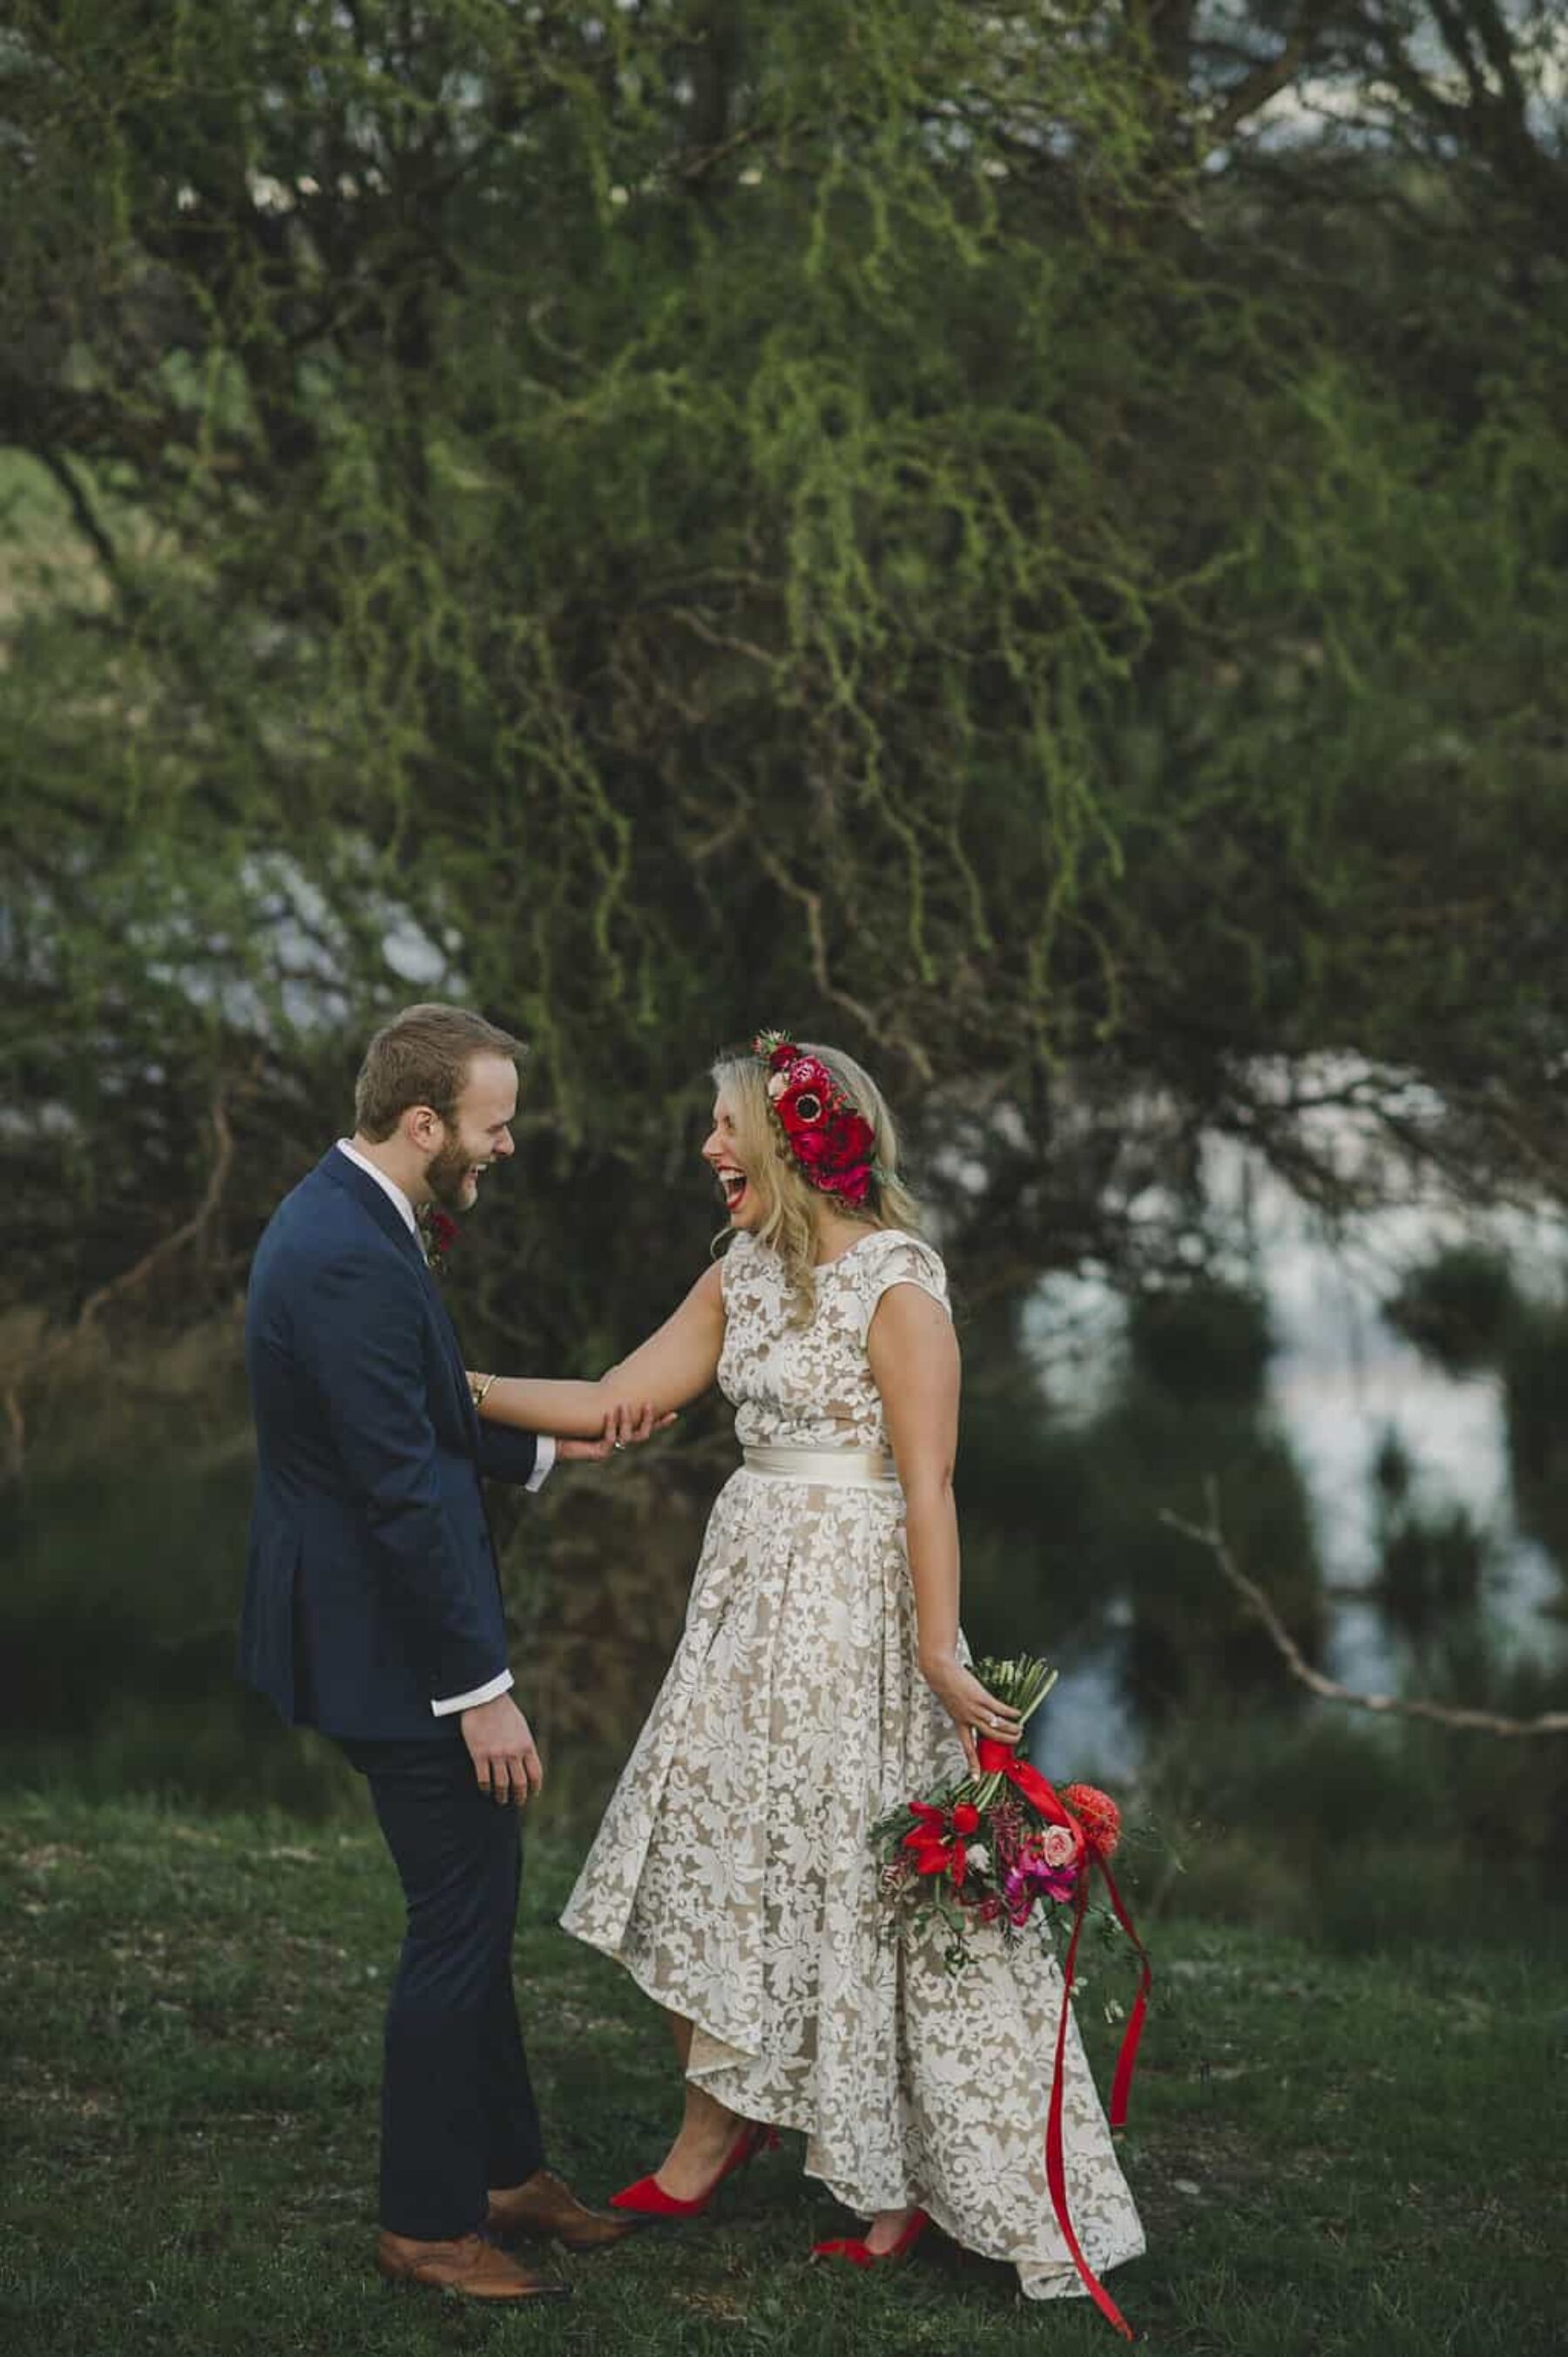 Chilled vintage wedding at Grazing at Gundaroo - Kelly Tunney Photography